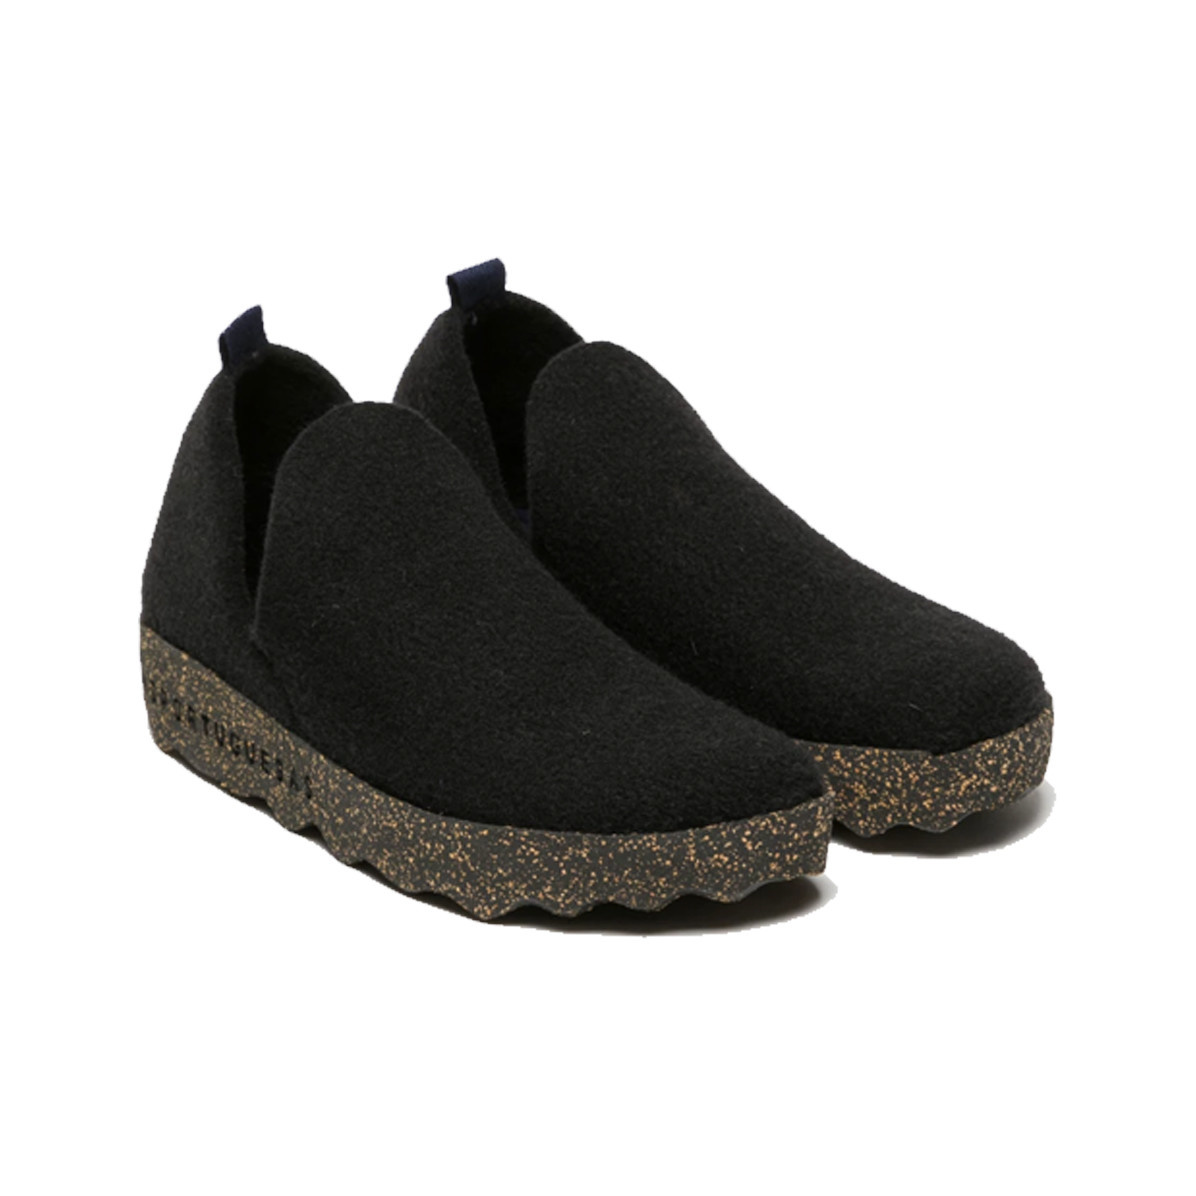 Asportuguesas Asportuguesas Men's Slipper Black